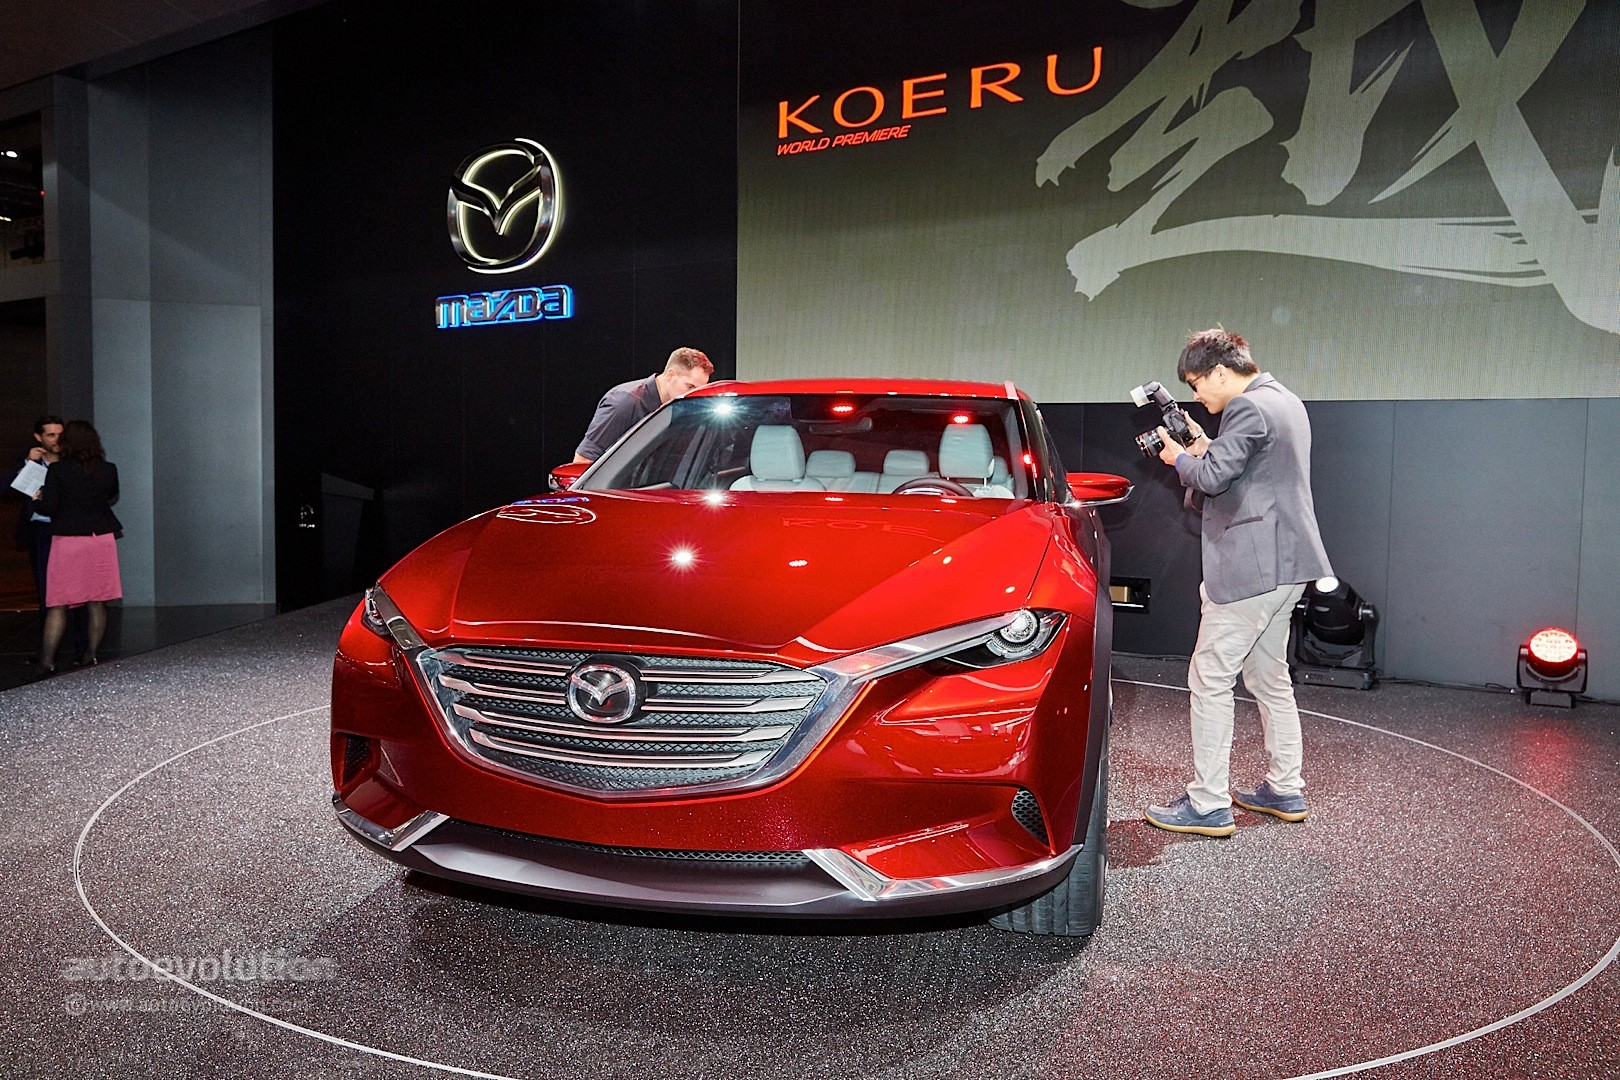 https://s1.cdn.autoevolution.com/images/news/gallery/mazda-koeru-concept-is-a-stunning-for-the-next-japanese-suv-live-photos_1.jpg